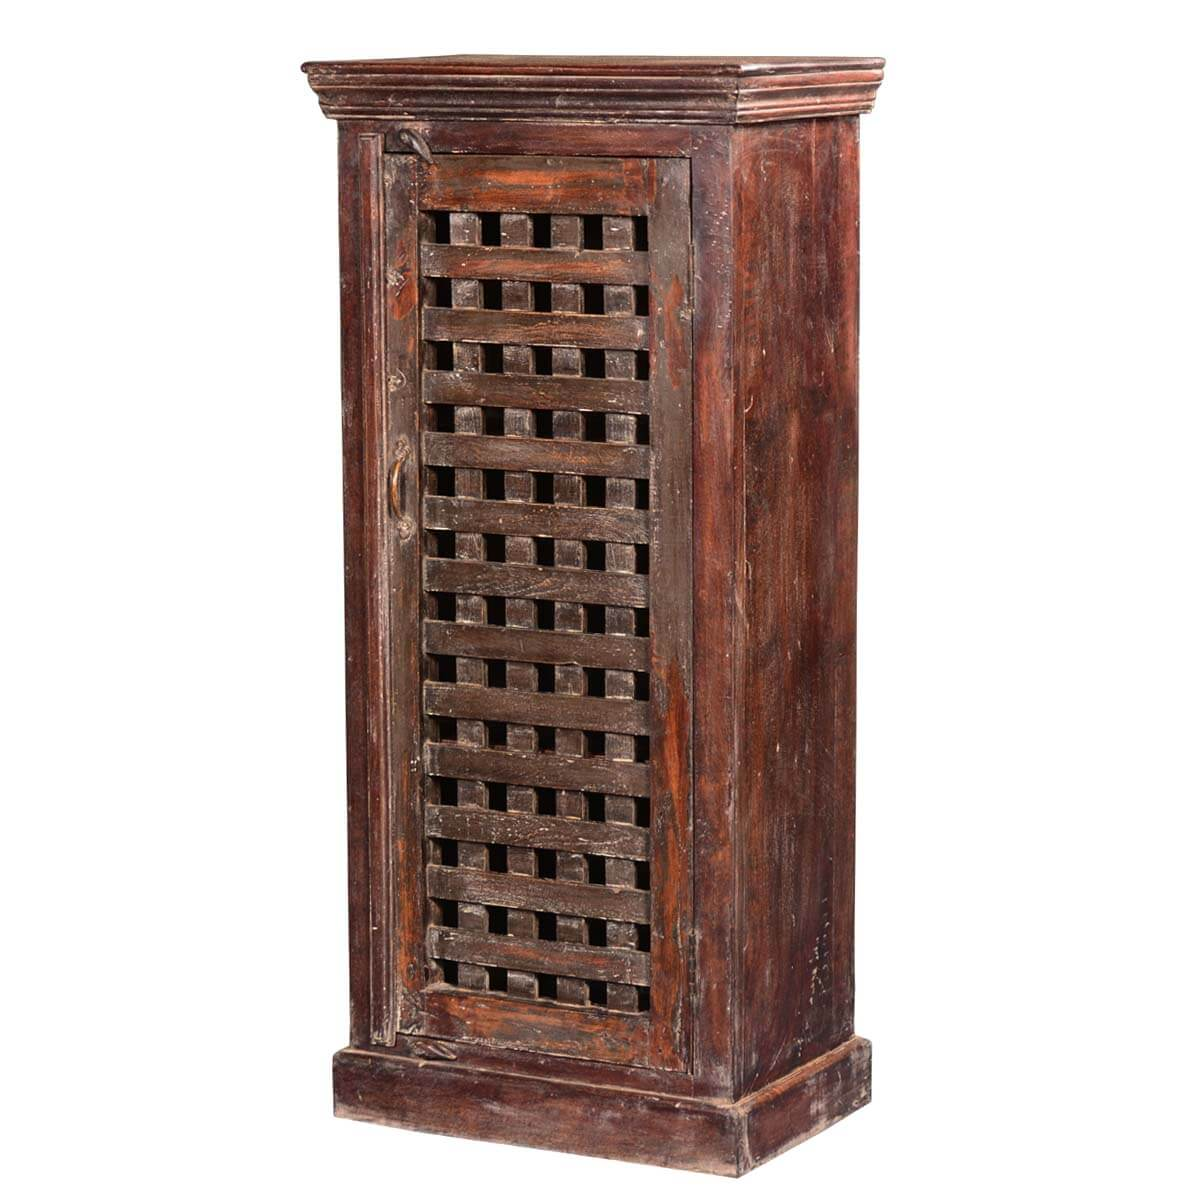 Rustic farmhouse lattice door reclaimed wood freestanding cabinet